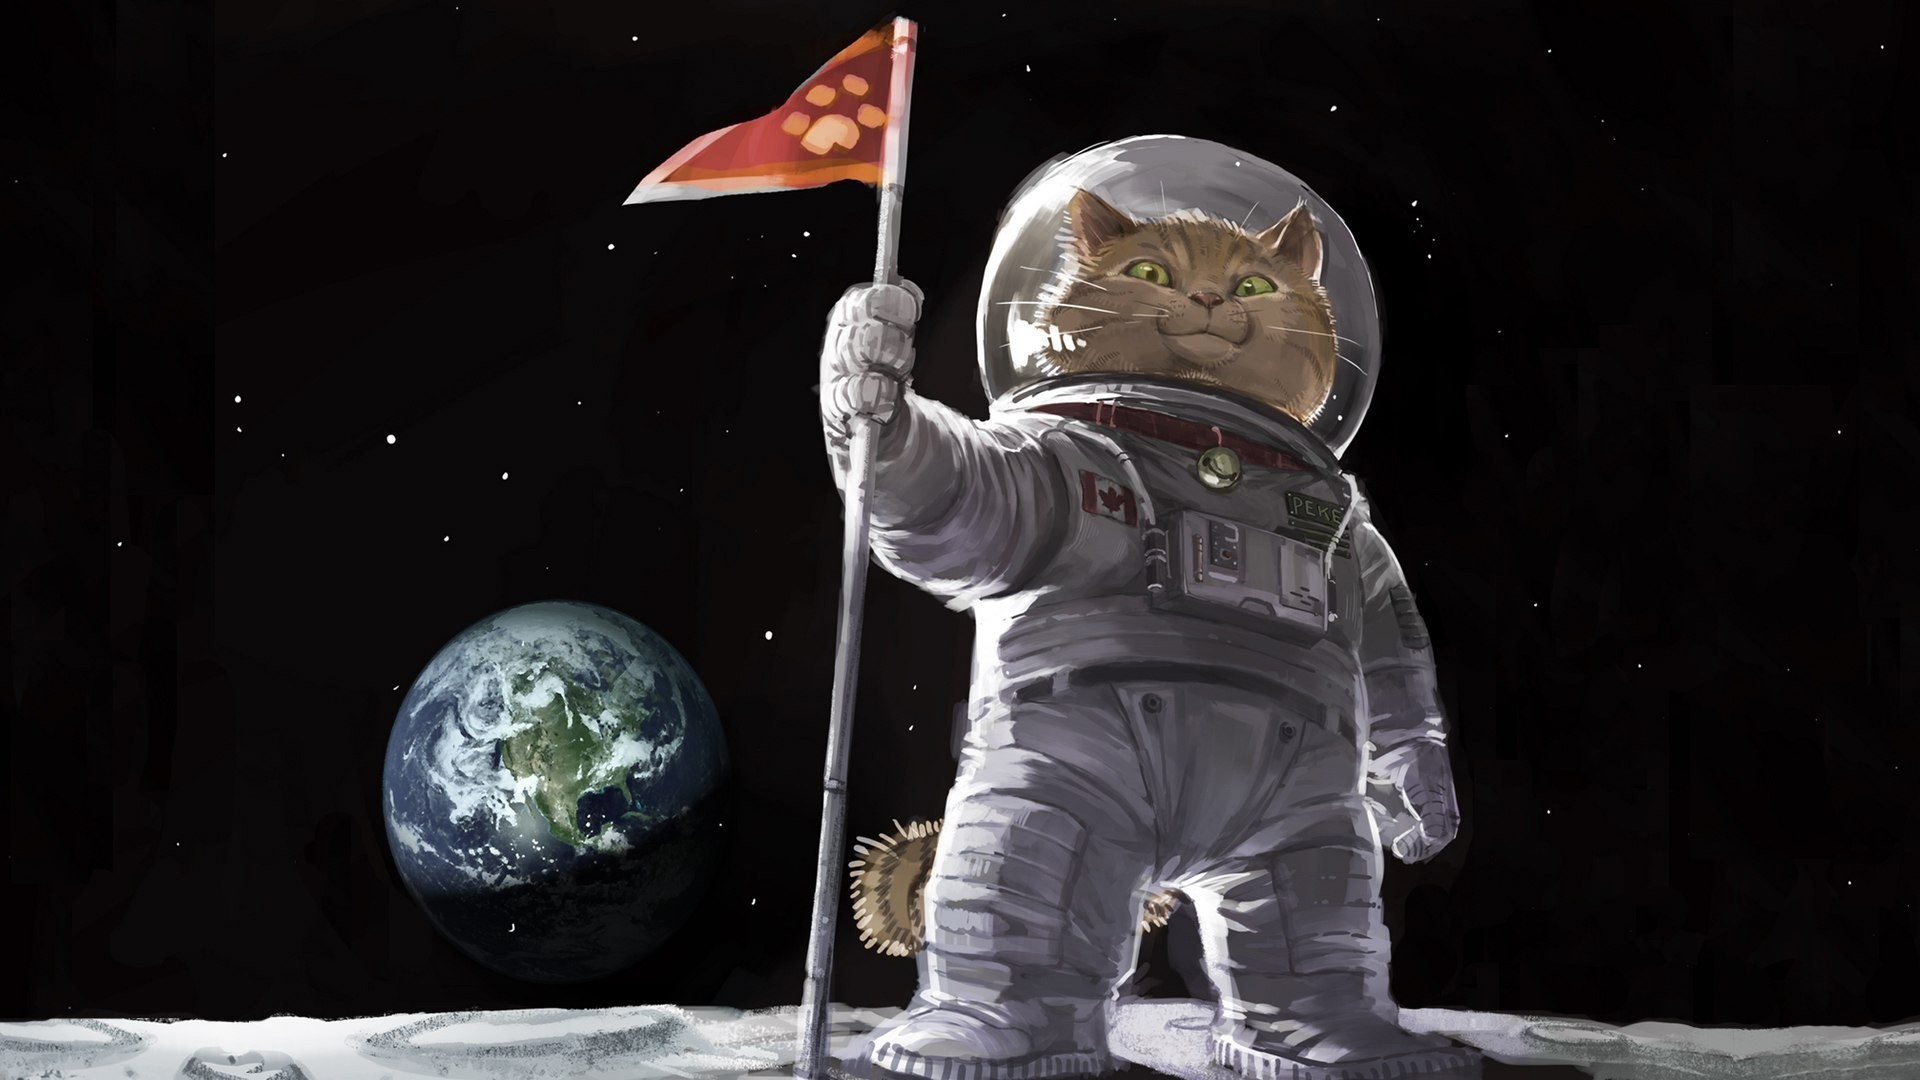 1920x1080 Cat astronaut on the moon wallpapers and images - wallpapers, pictures .